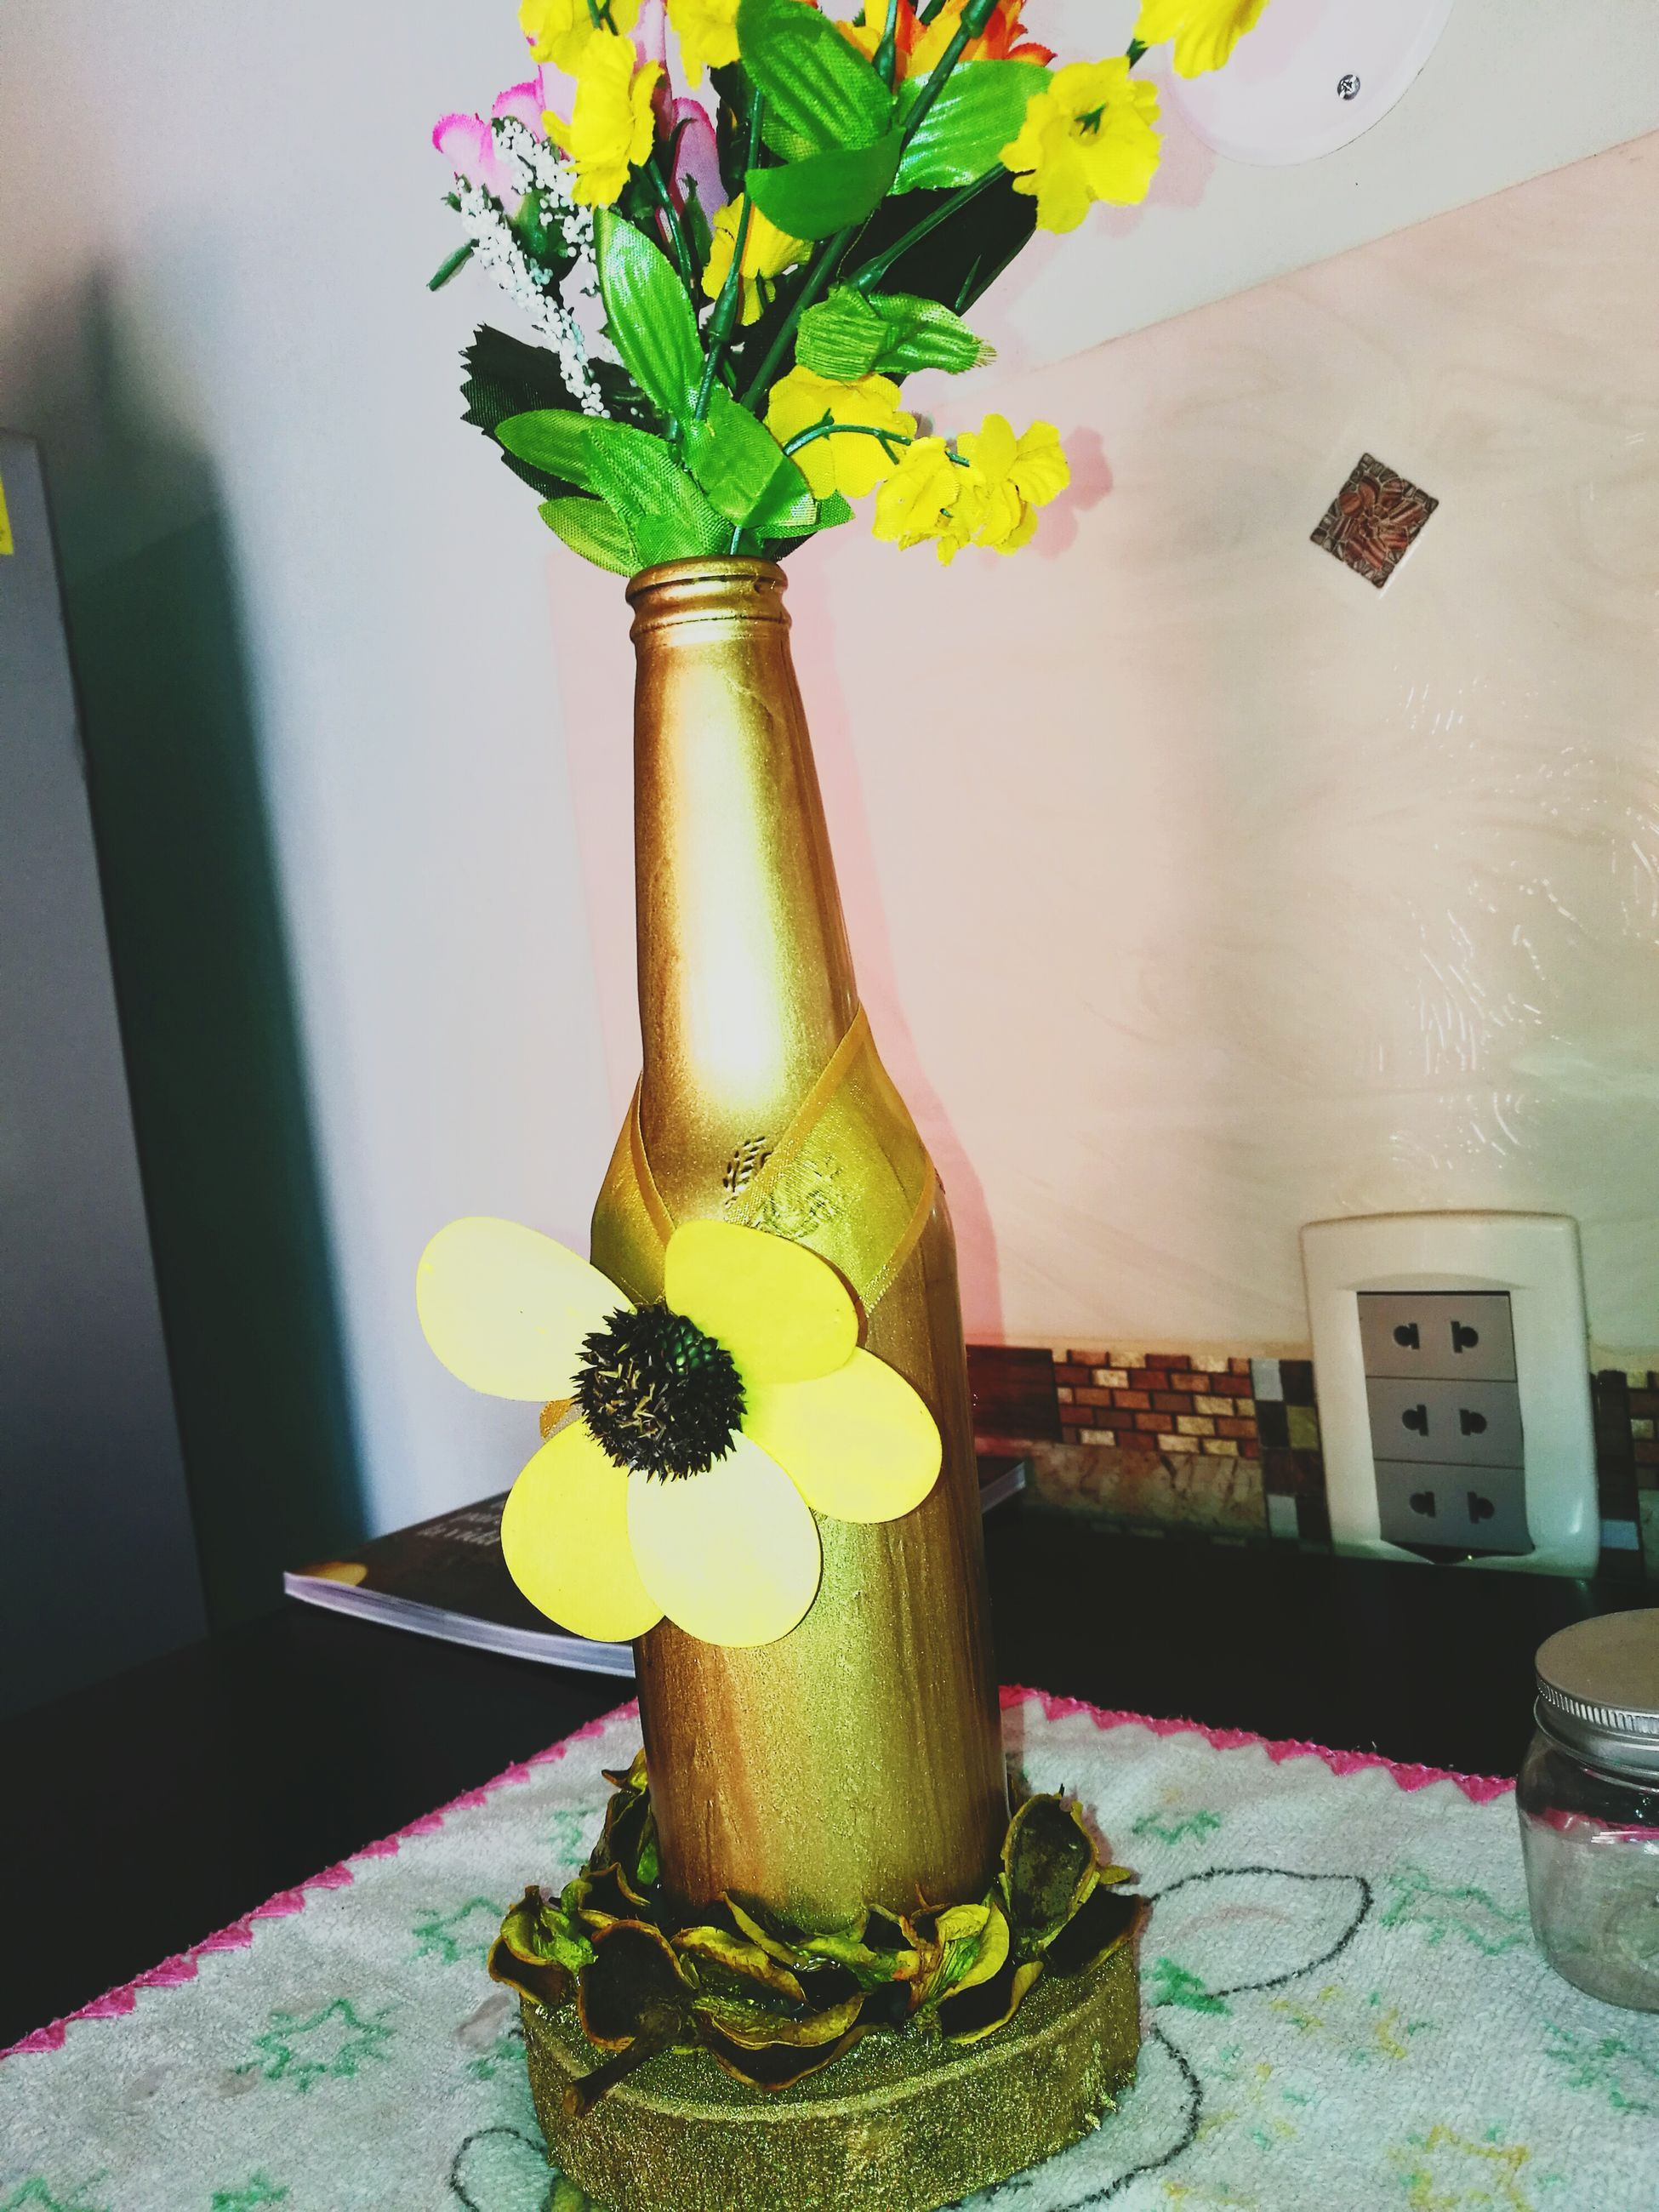 flower, indoors, vase, potted plant, plant, growth, flower pot, still life, houseplant, variation, shelf, bouquet, flower arrangement, decoration, group of objects, watering can, bunch of flowers, arrangement, freshness, pot plant, house plant, large group of objects, fragility